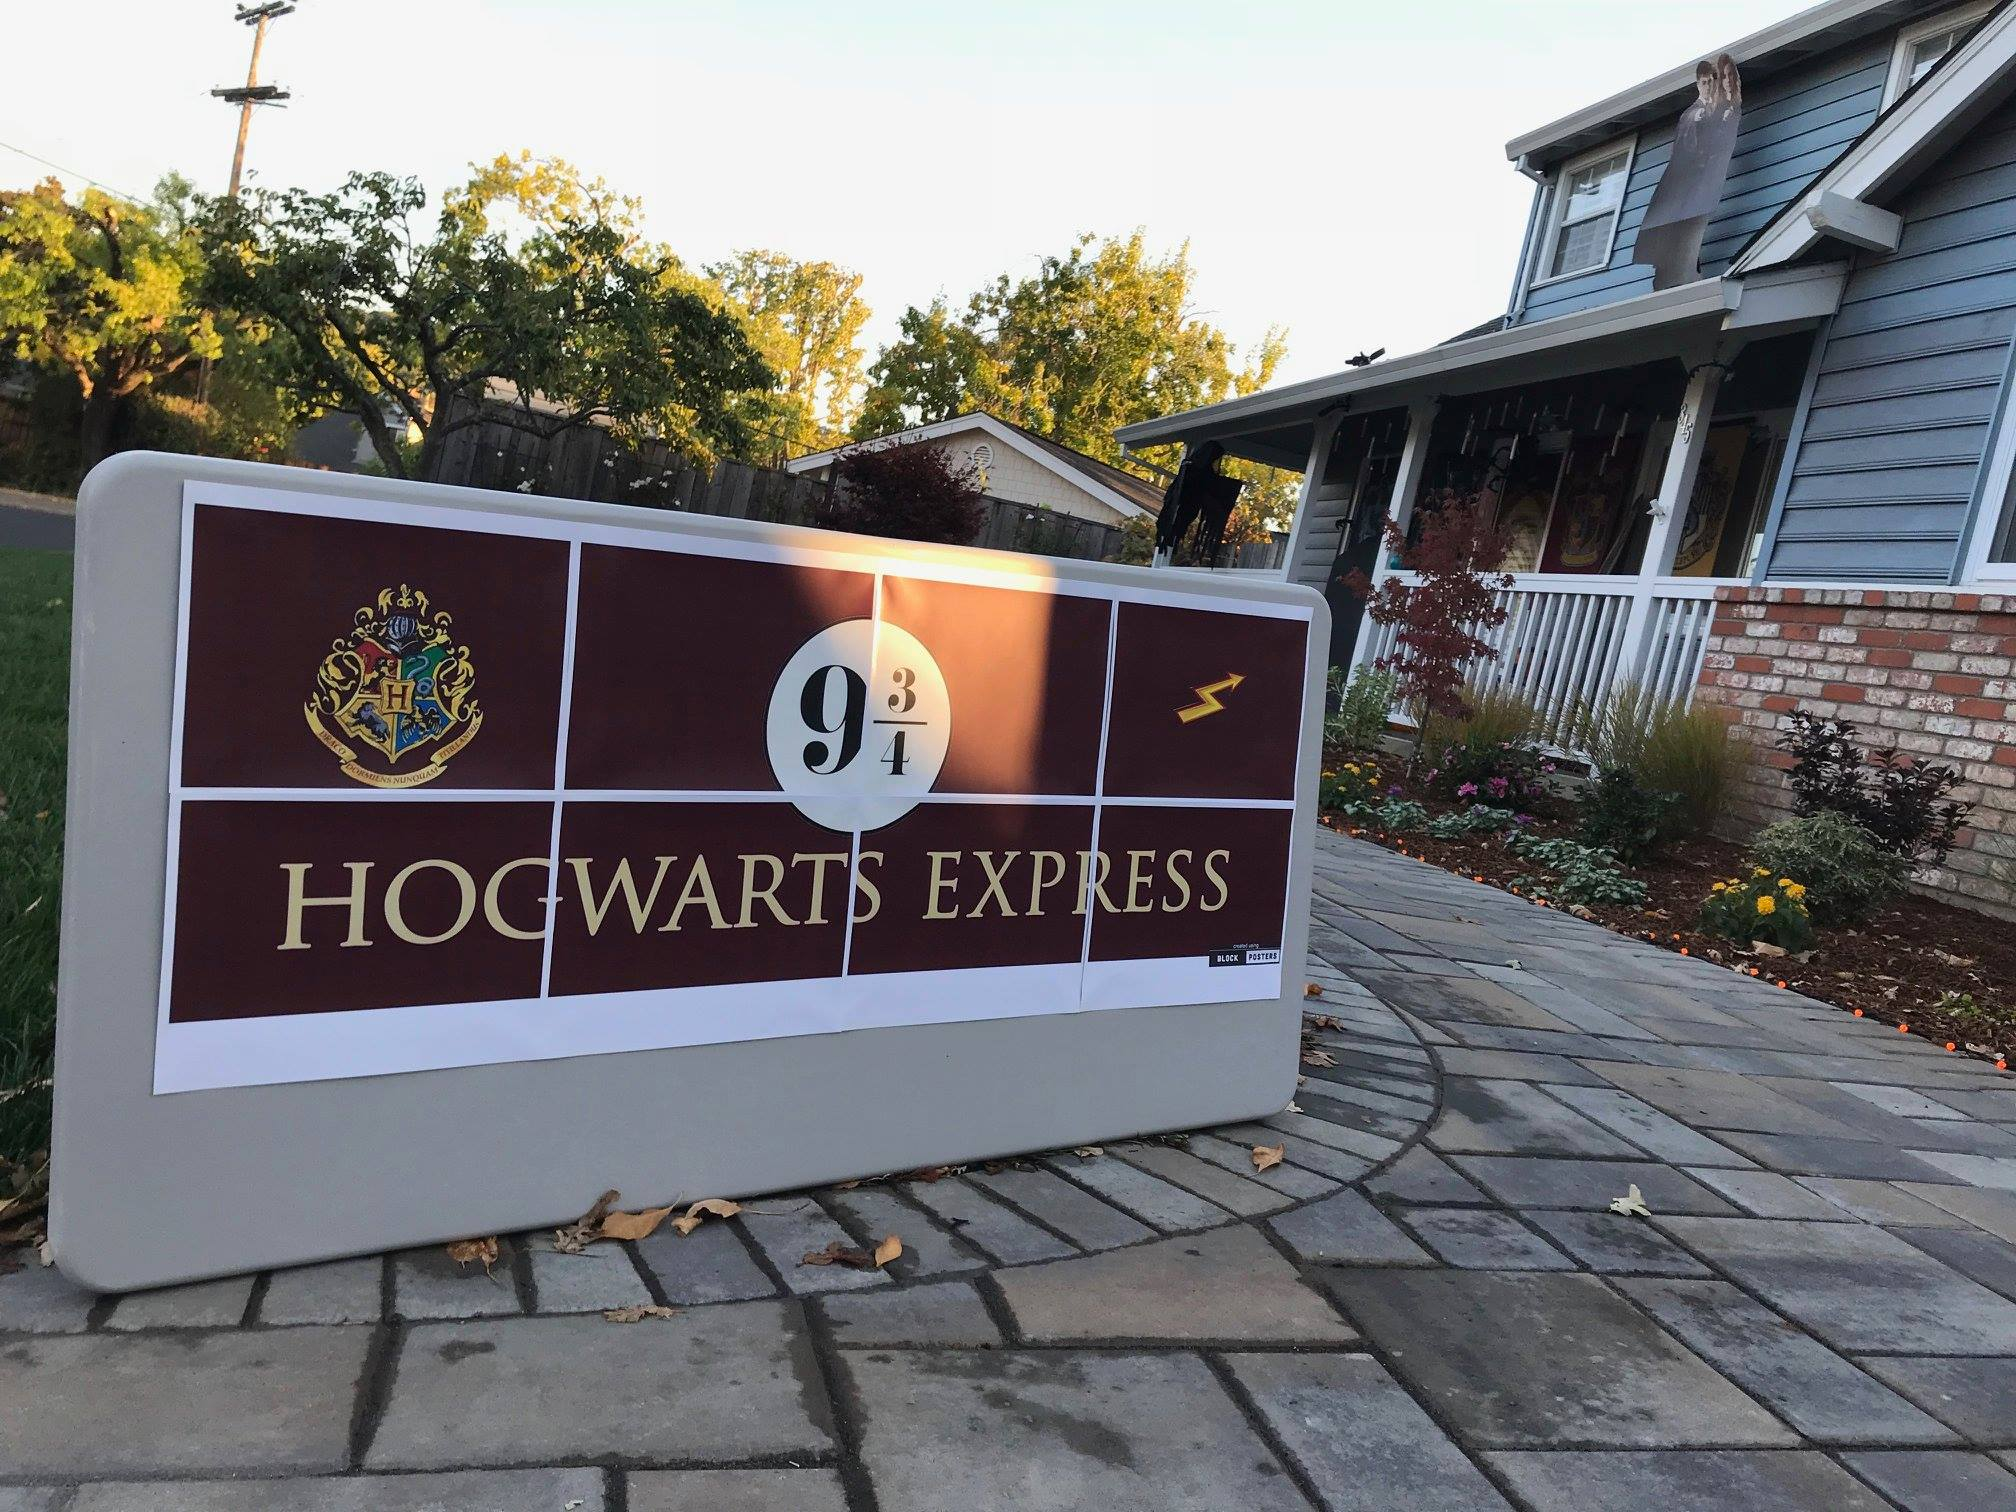 Stop By The Harry Potter Halloween House In Northern California For A Magical Outing